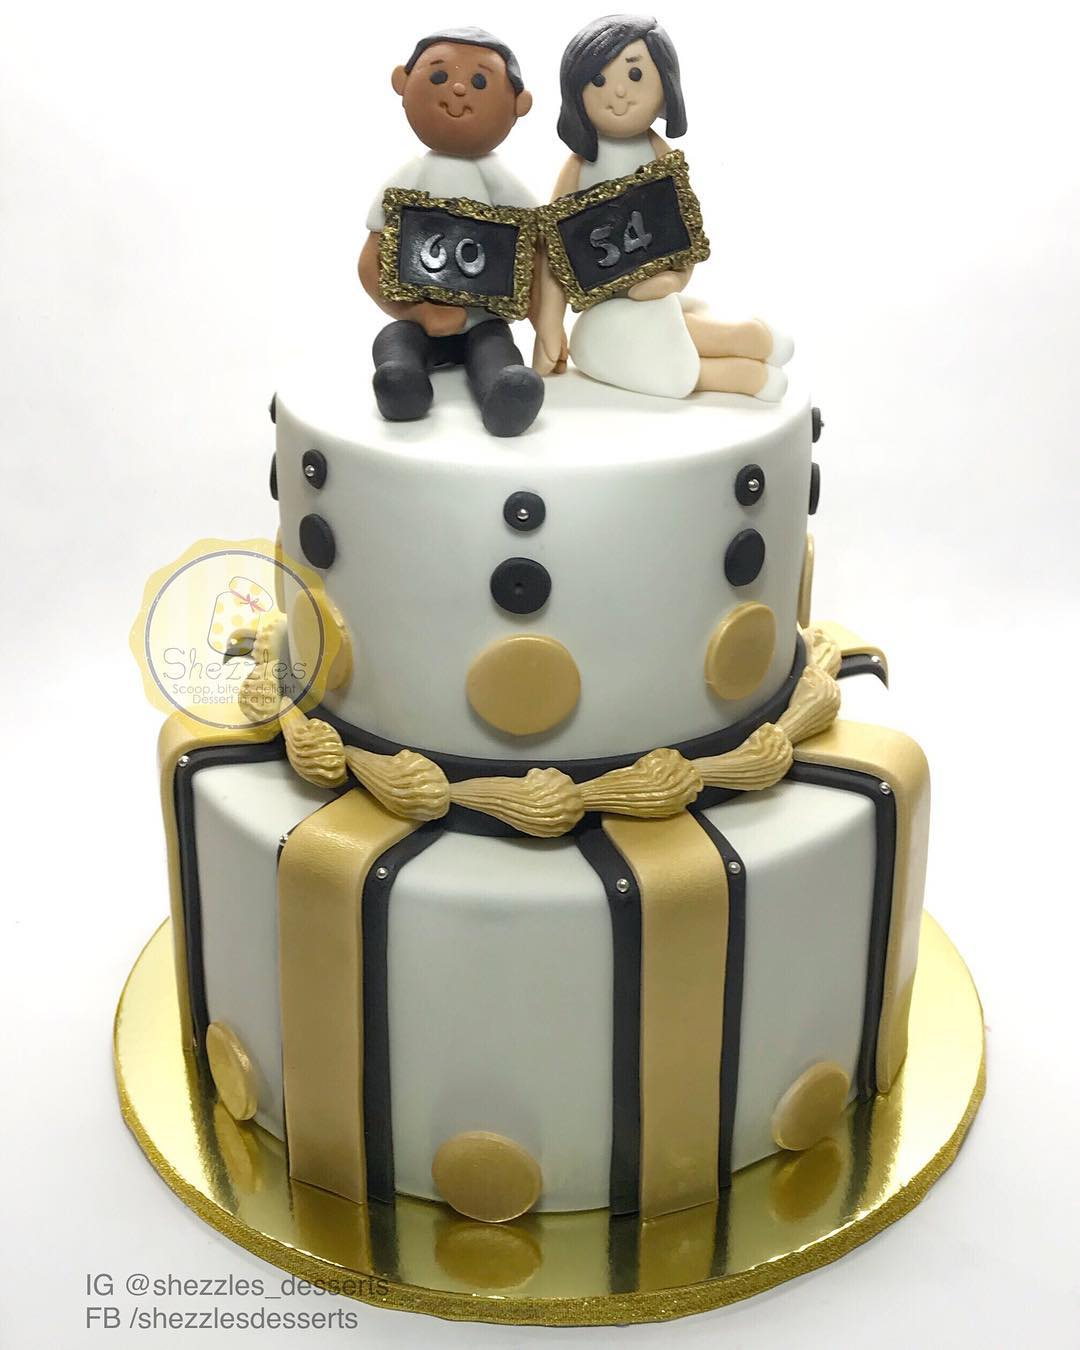 Pleasing Shezzles Cakes And Pastries Husband And Wife Birthday Cake Funny Birthday Cards Online Barepcheapnameinfo